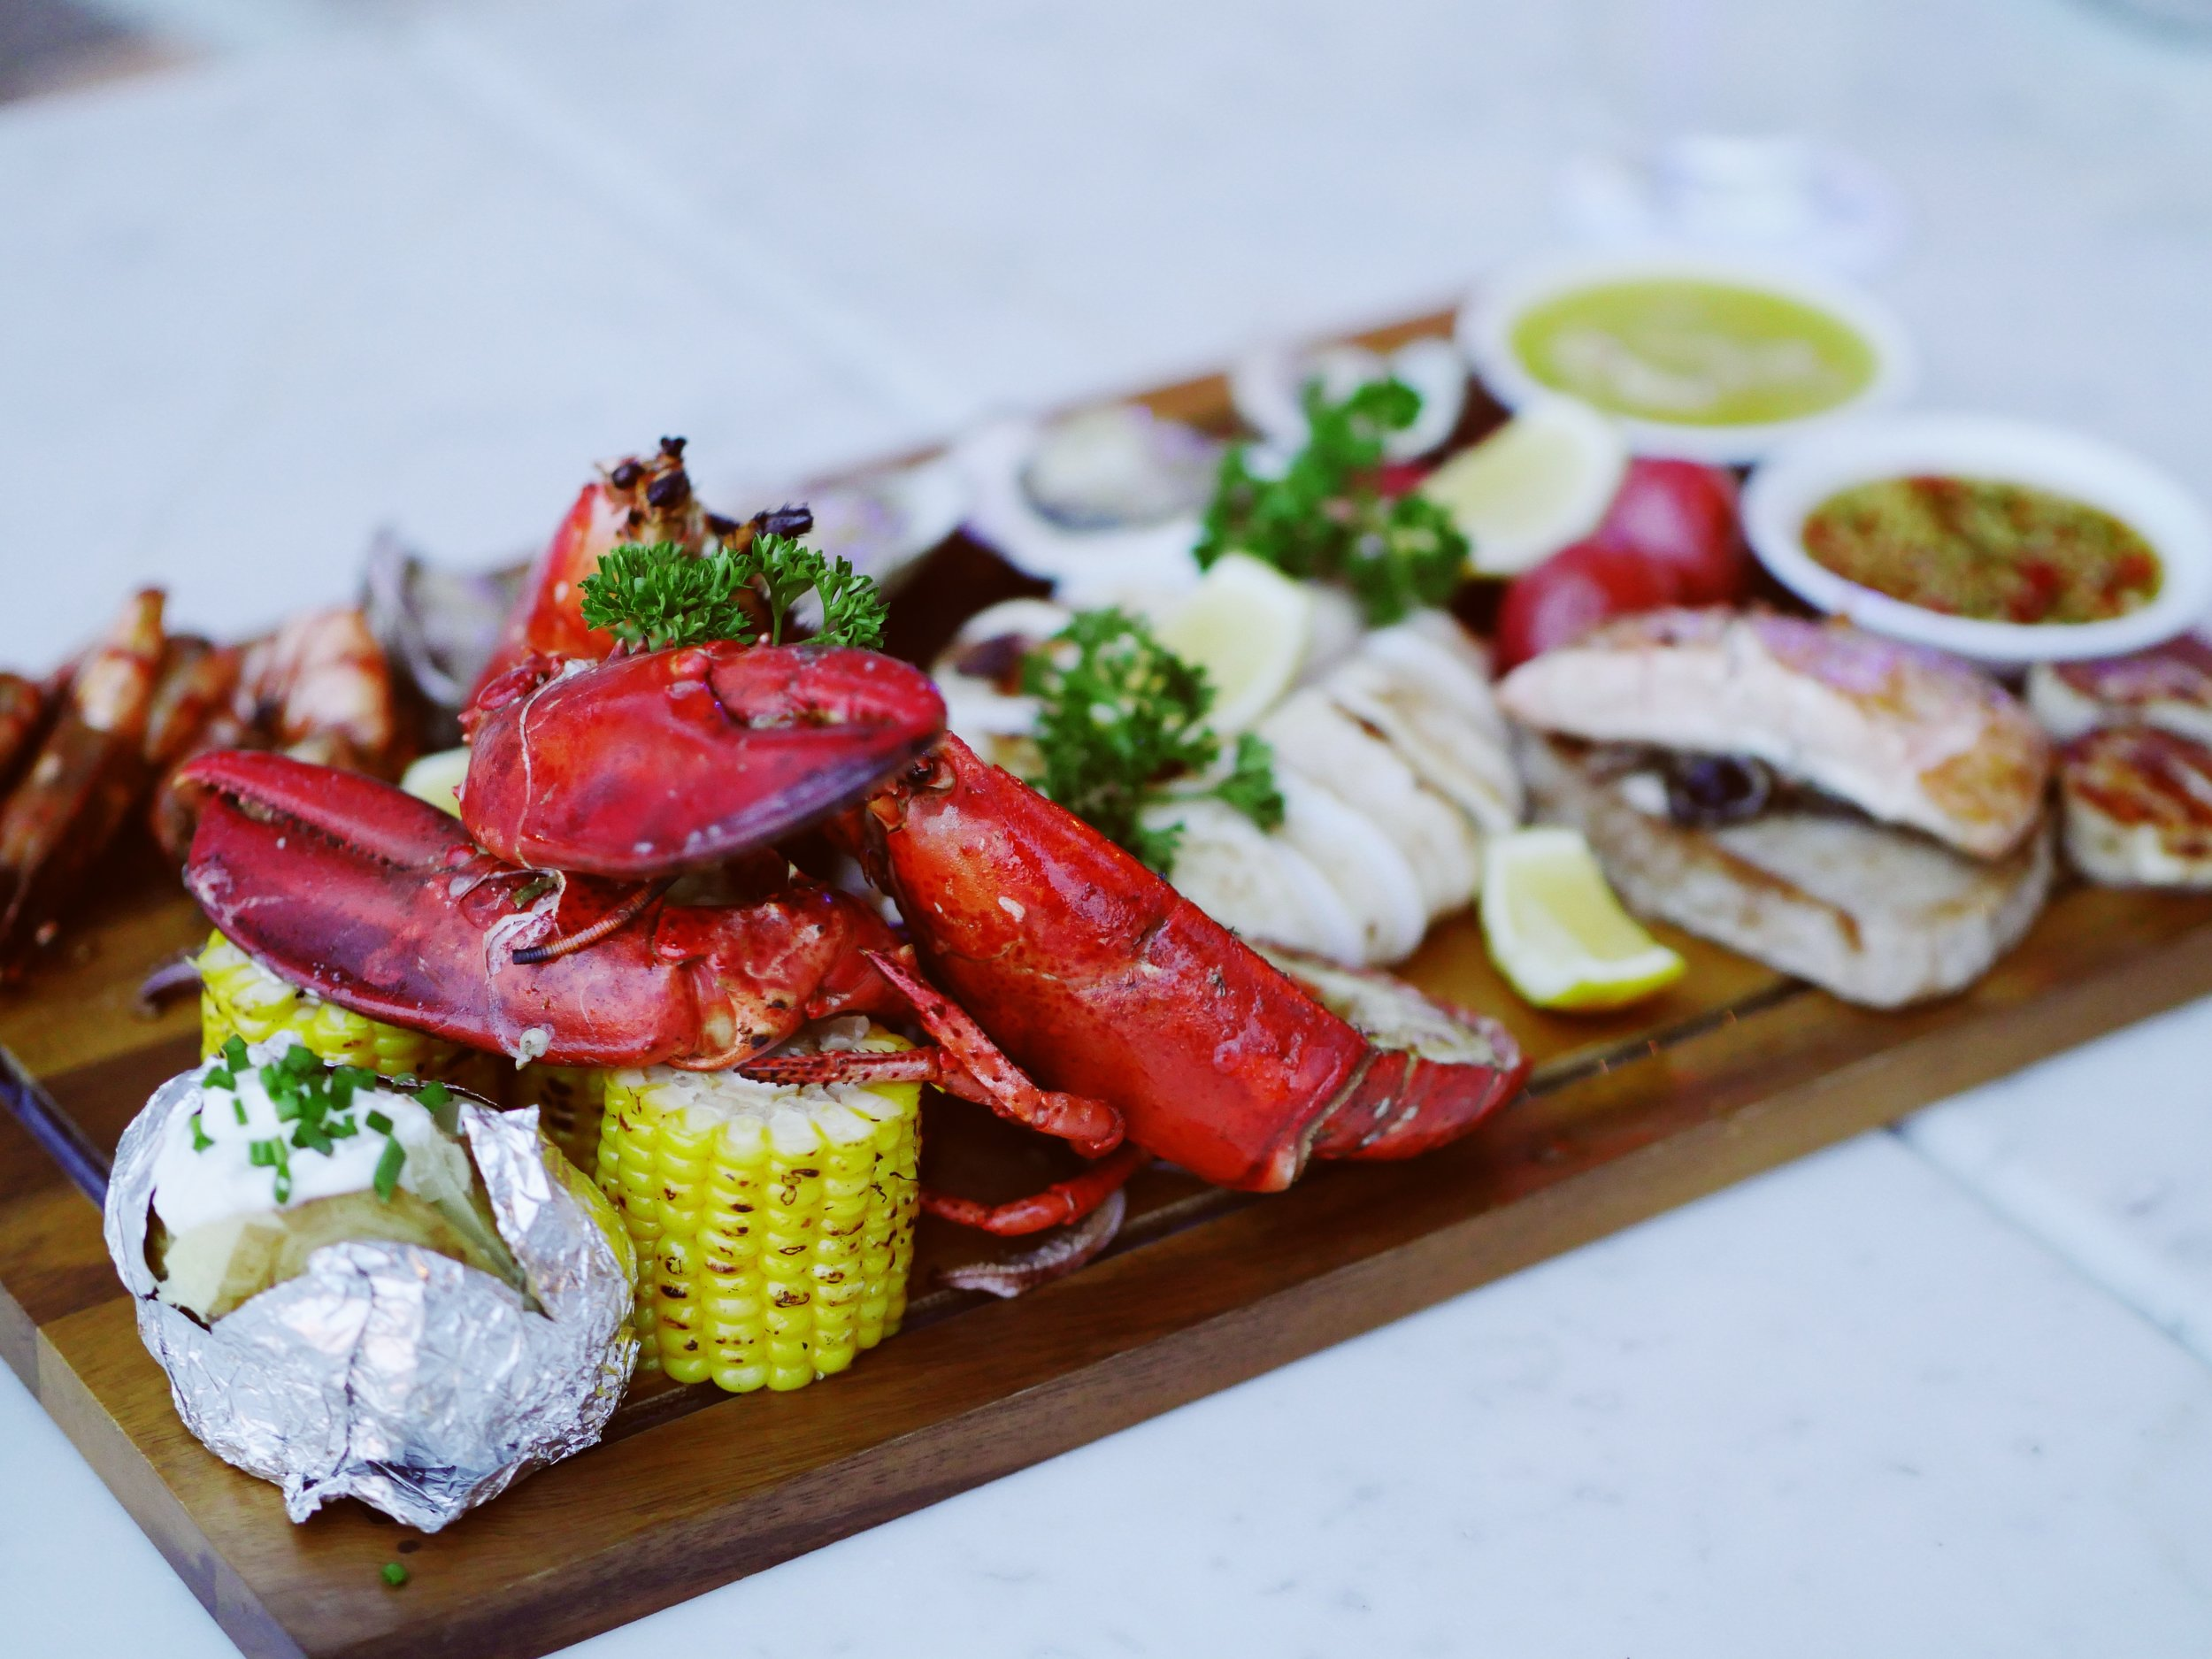 Fresh Maine lobster served on our oceanfront deck